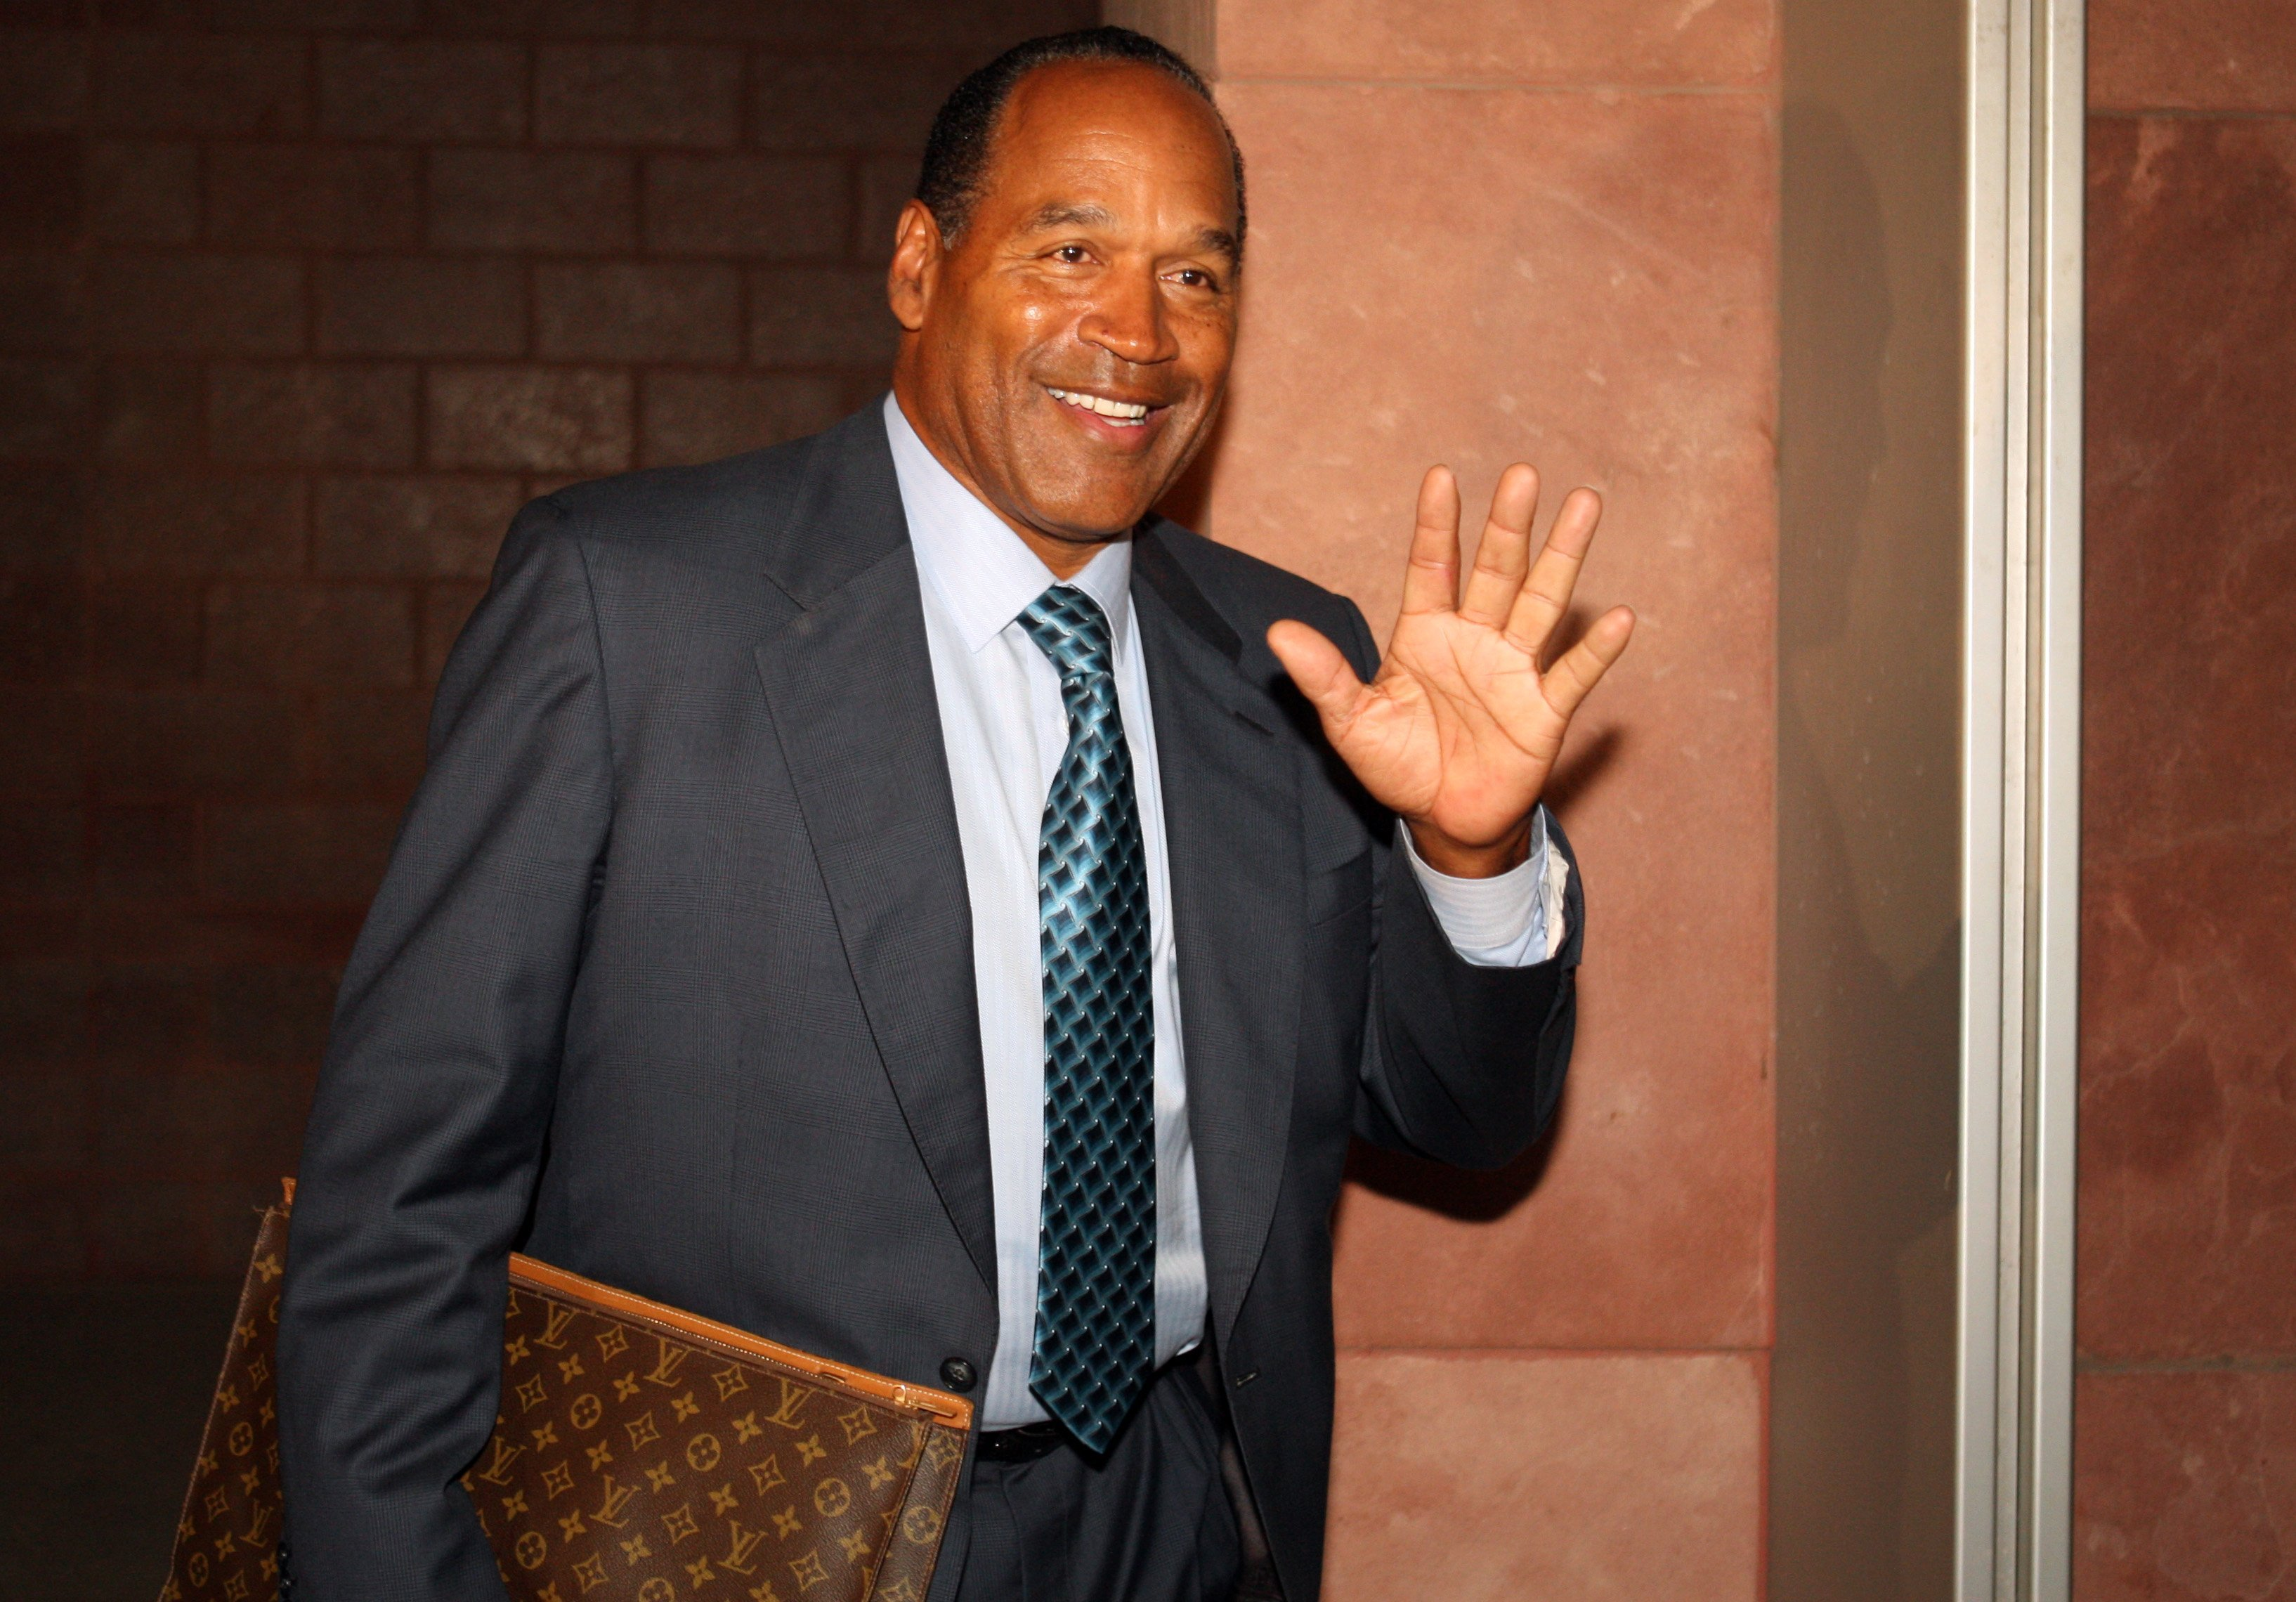 O.J. Simpson leaves court after closing arguments for his trial at the Clark County Regional Justice Center on October 2, 2008. | Photo: GettyImages